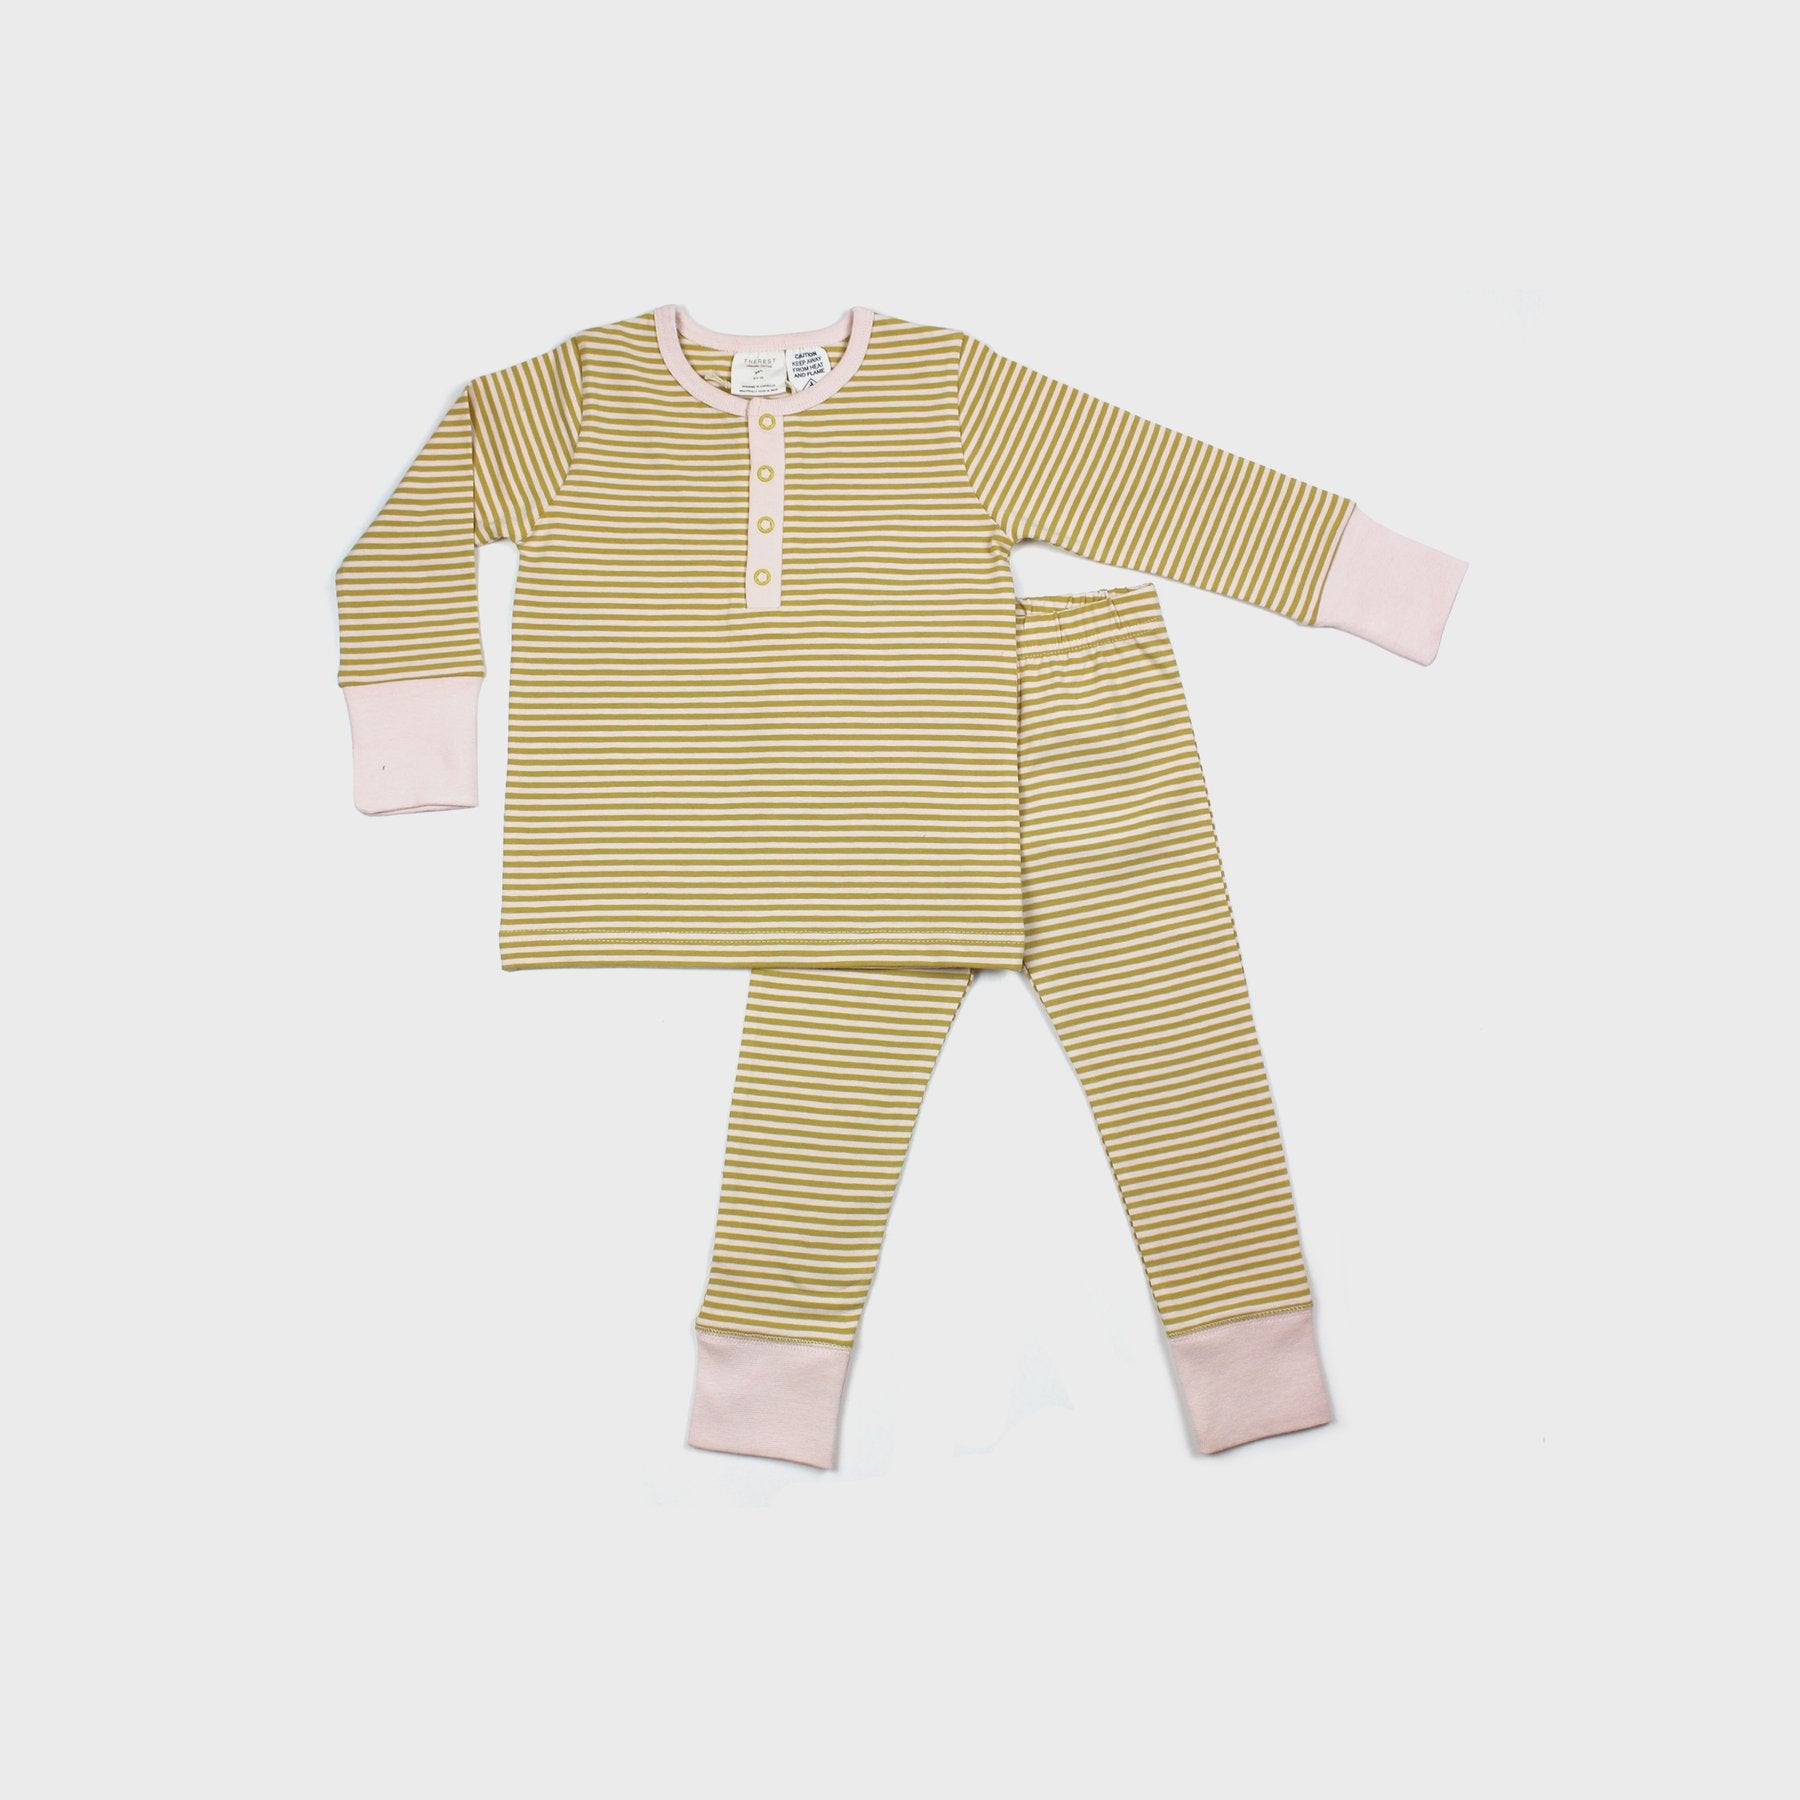 THE REST - Winter PJ Set | Mustard/Blush Stripe